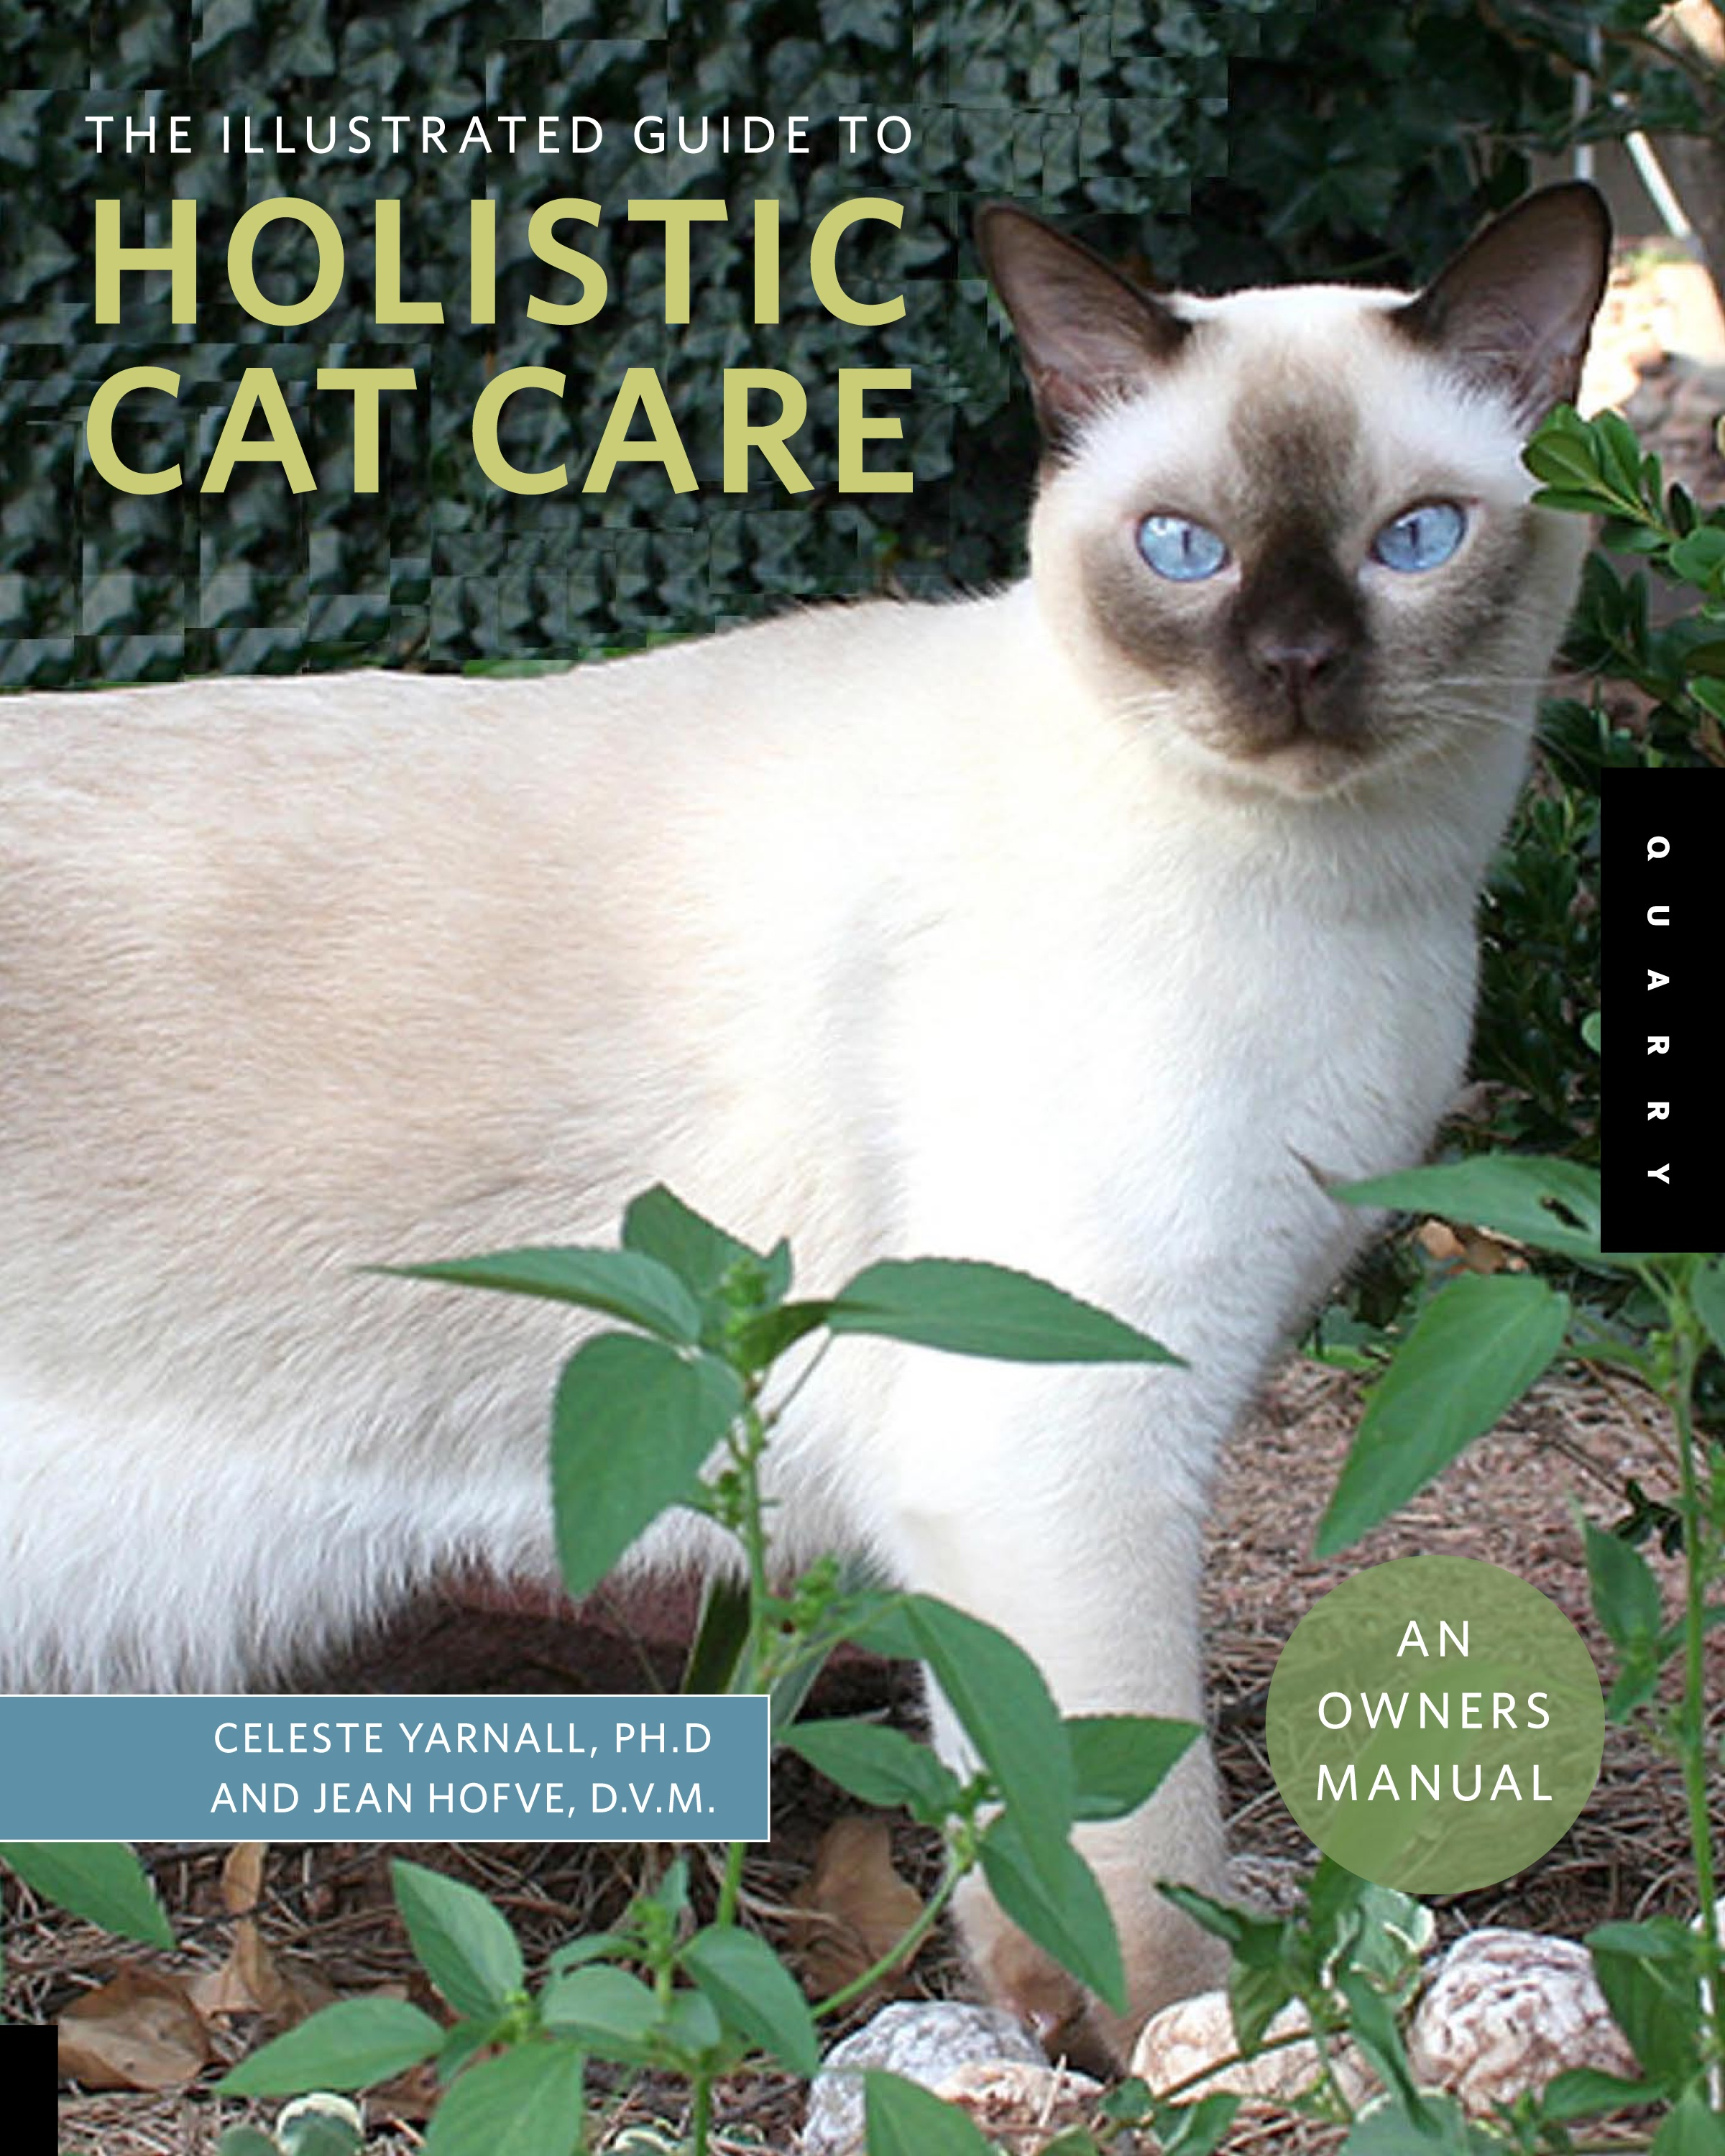 The Complete Guide to Holistic CatCare